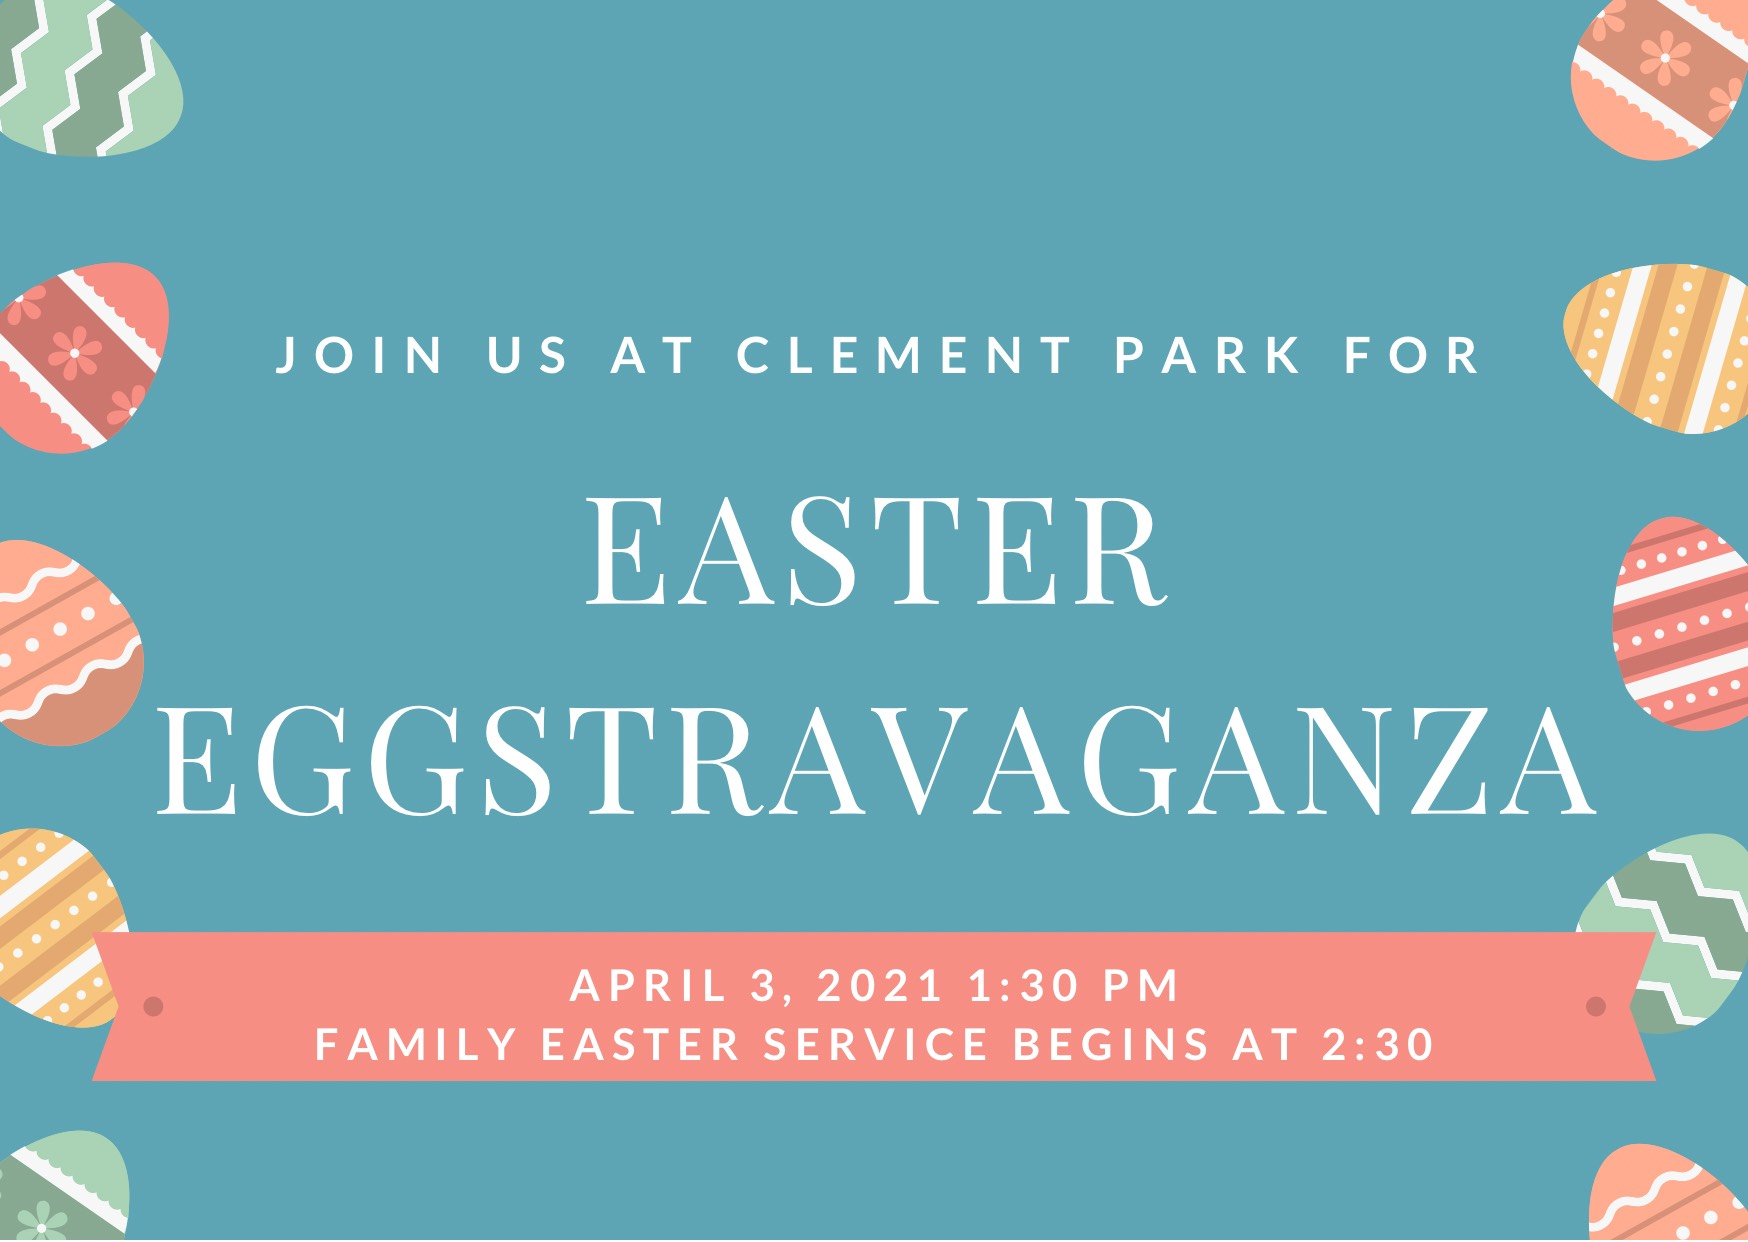 Family Easter Events at Clement Park!